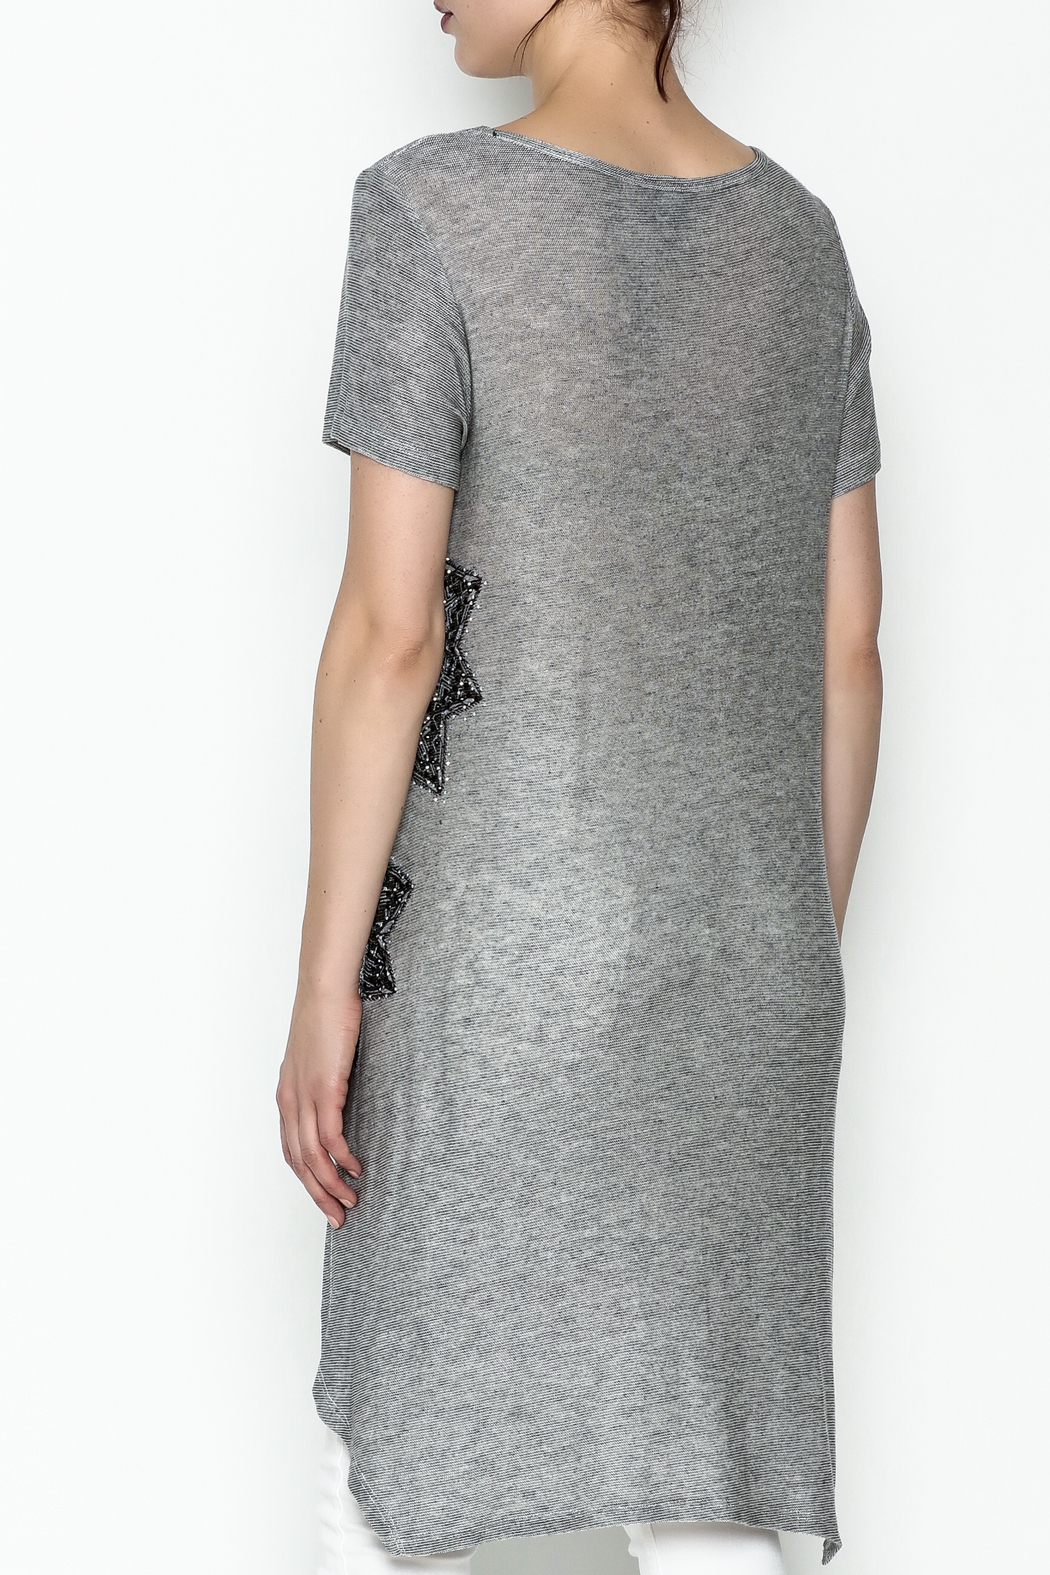 Vocal Light Grey Tunic Top - Back Cropped Image